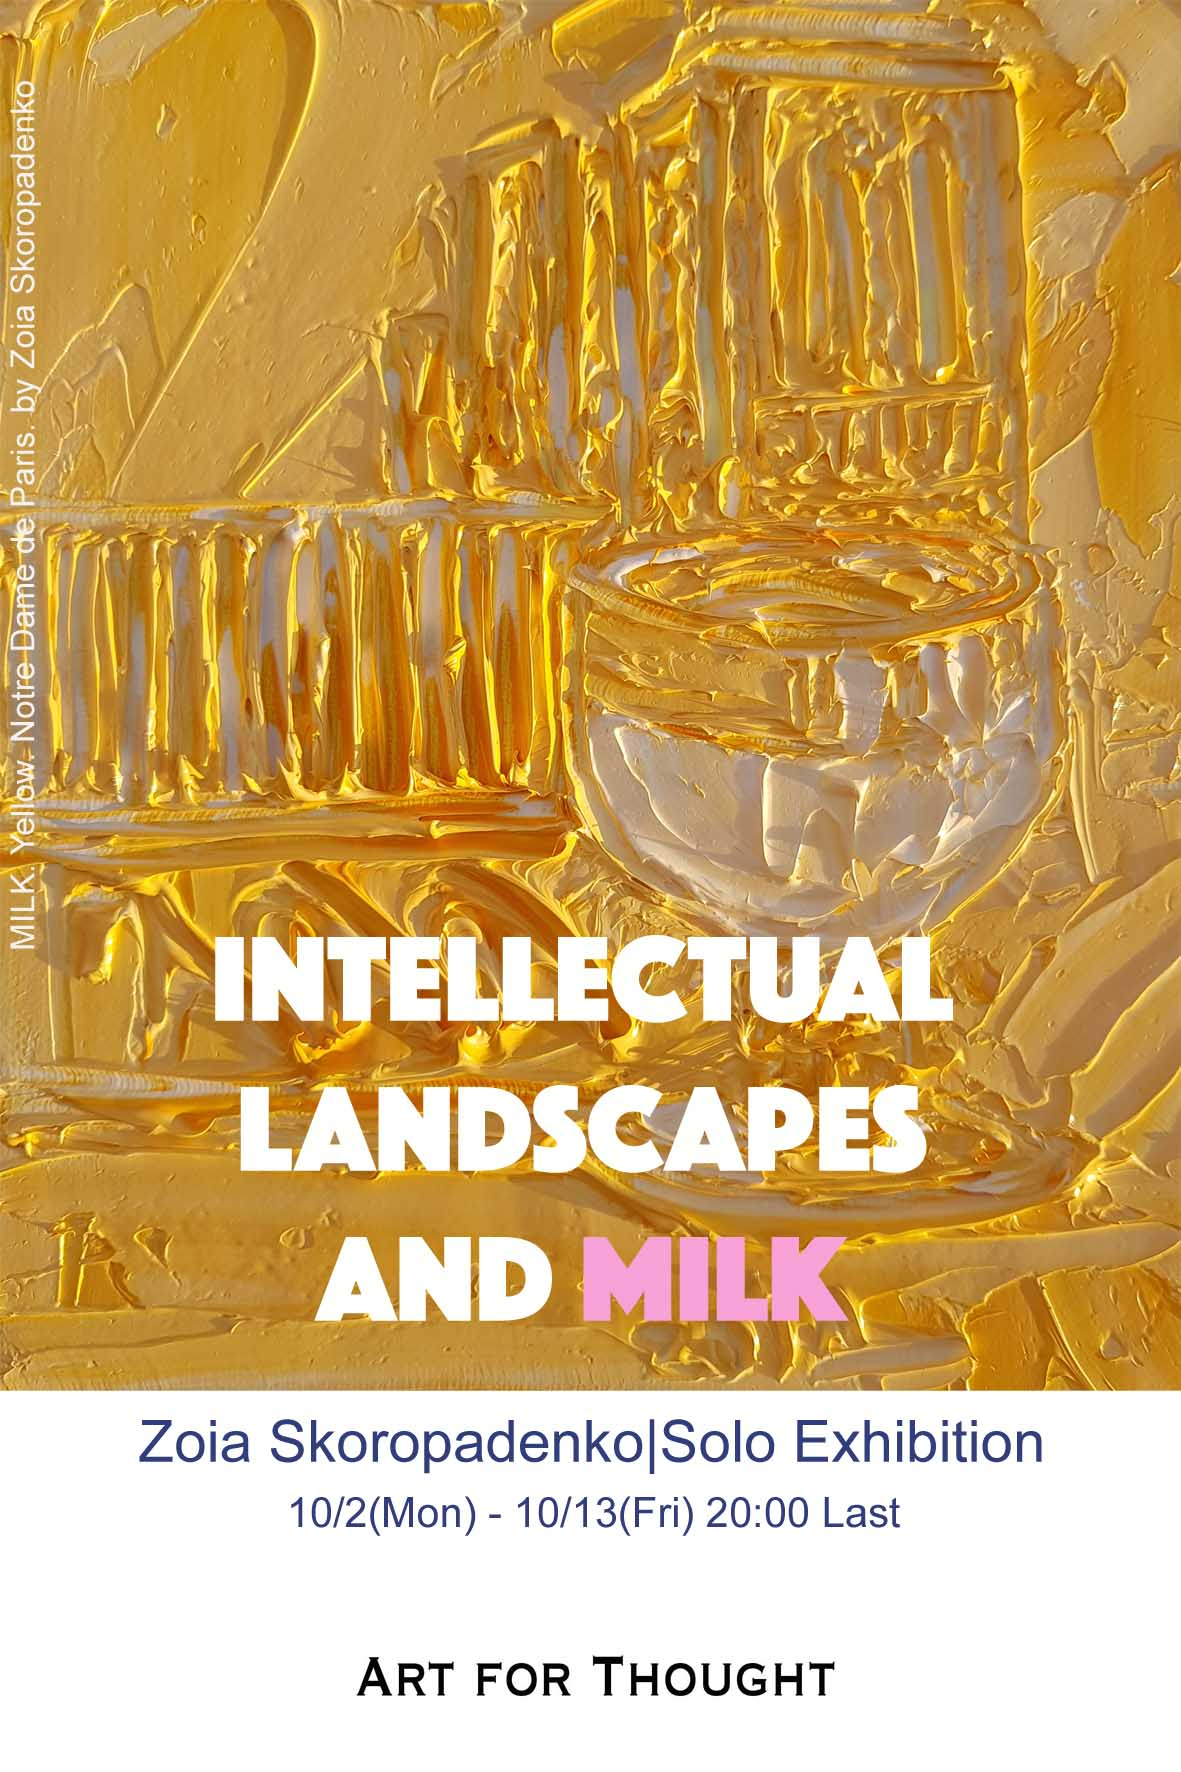 Intellectual Landscape and MILK